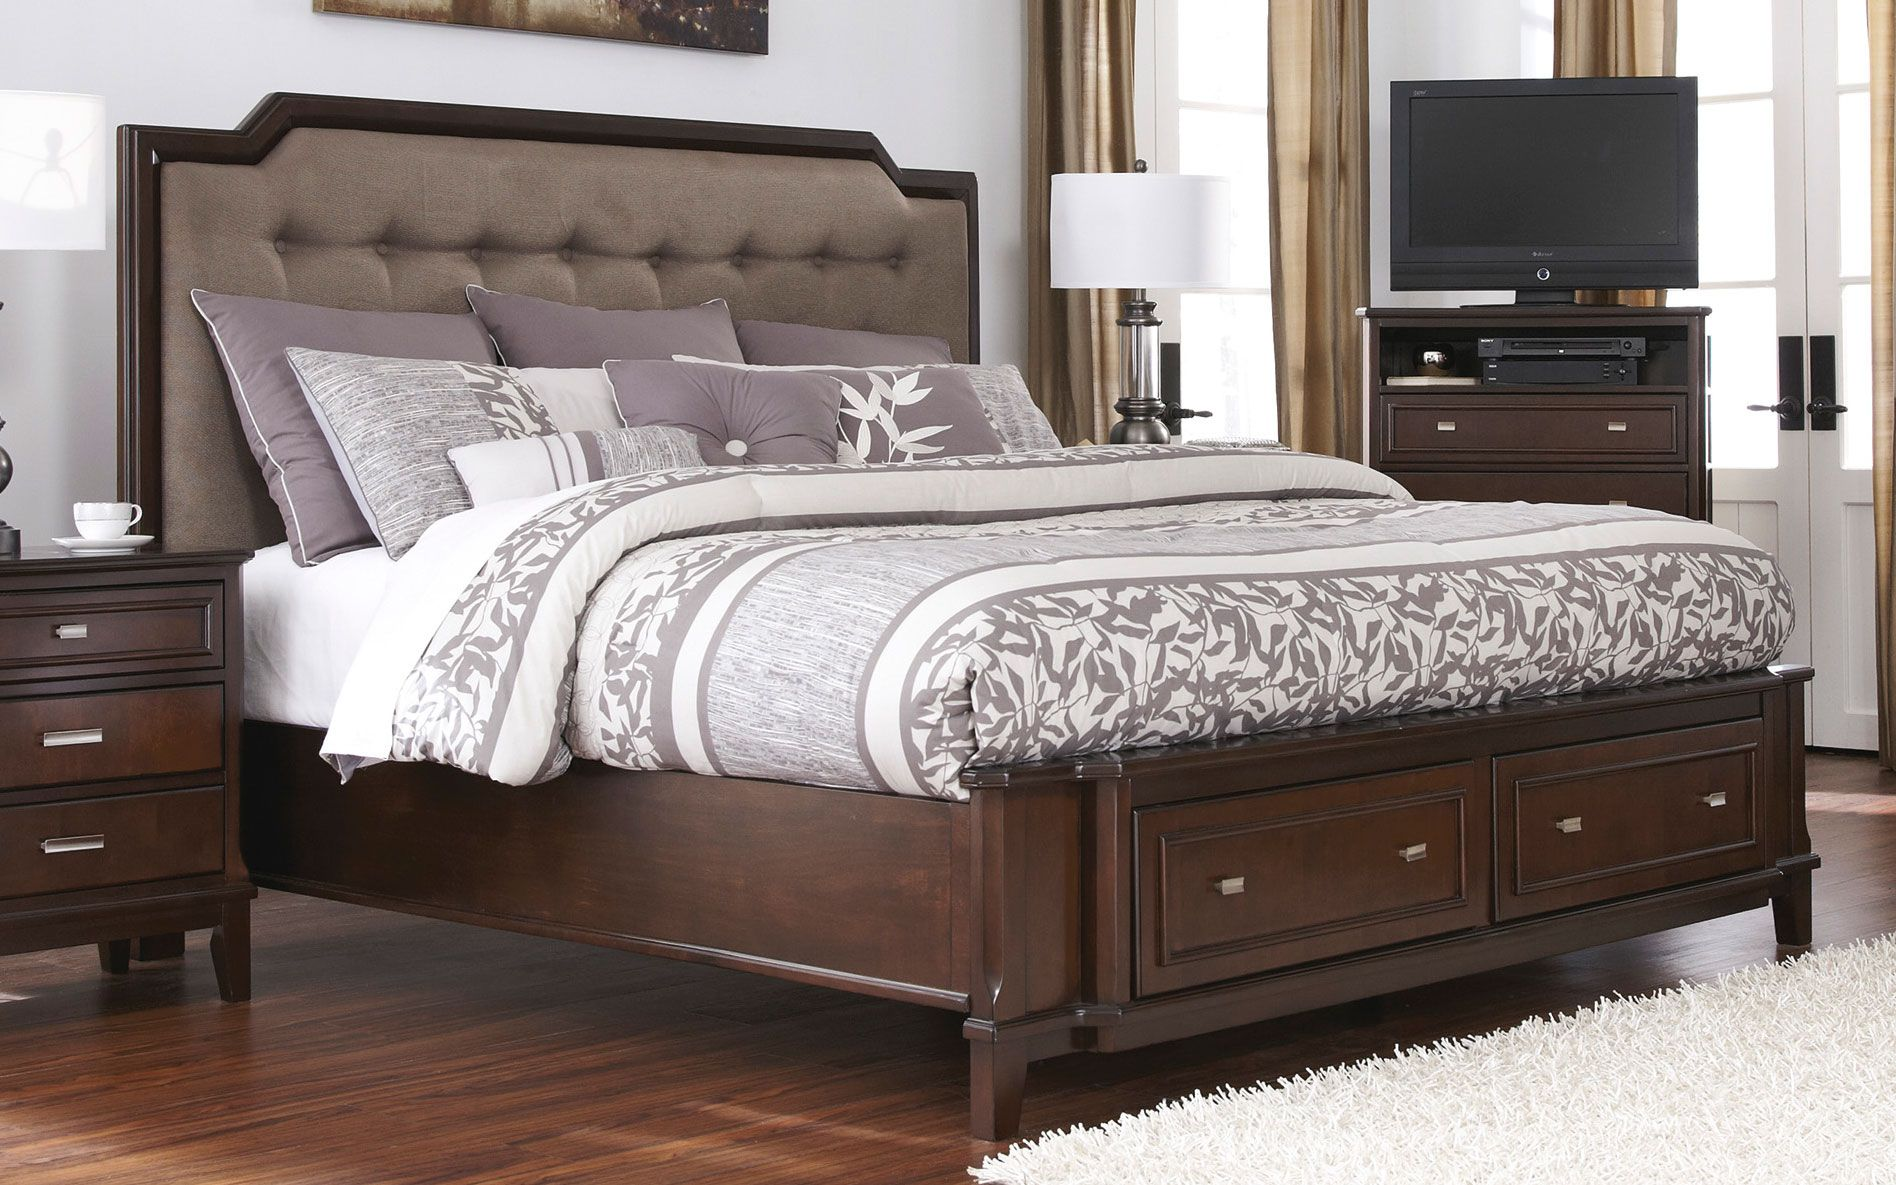 Find A King Size Bed For Your Bedroom Cheap King Size Beds King Size Bedding Sets Best King Size Bed